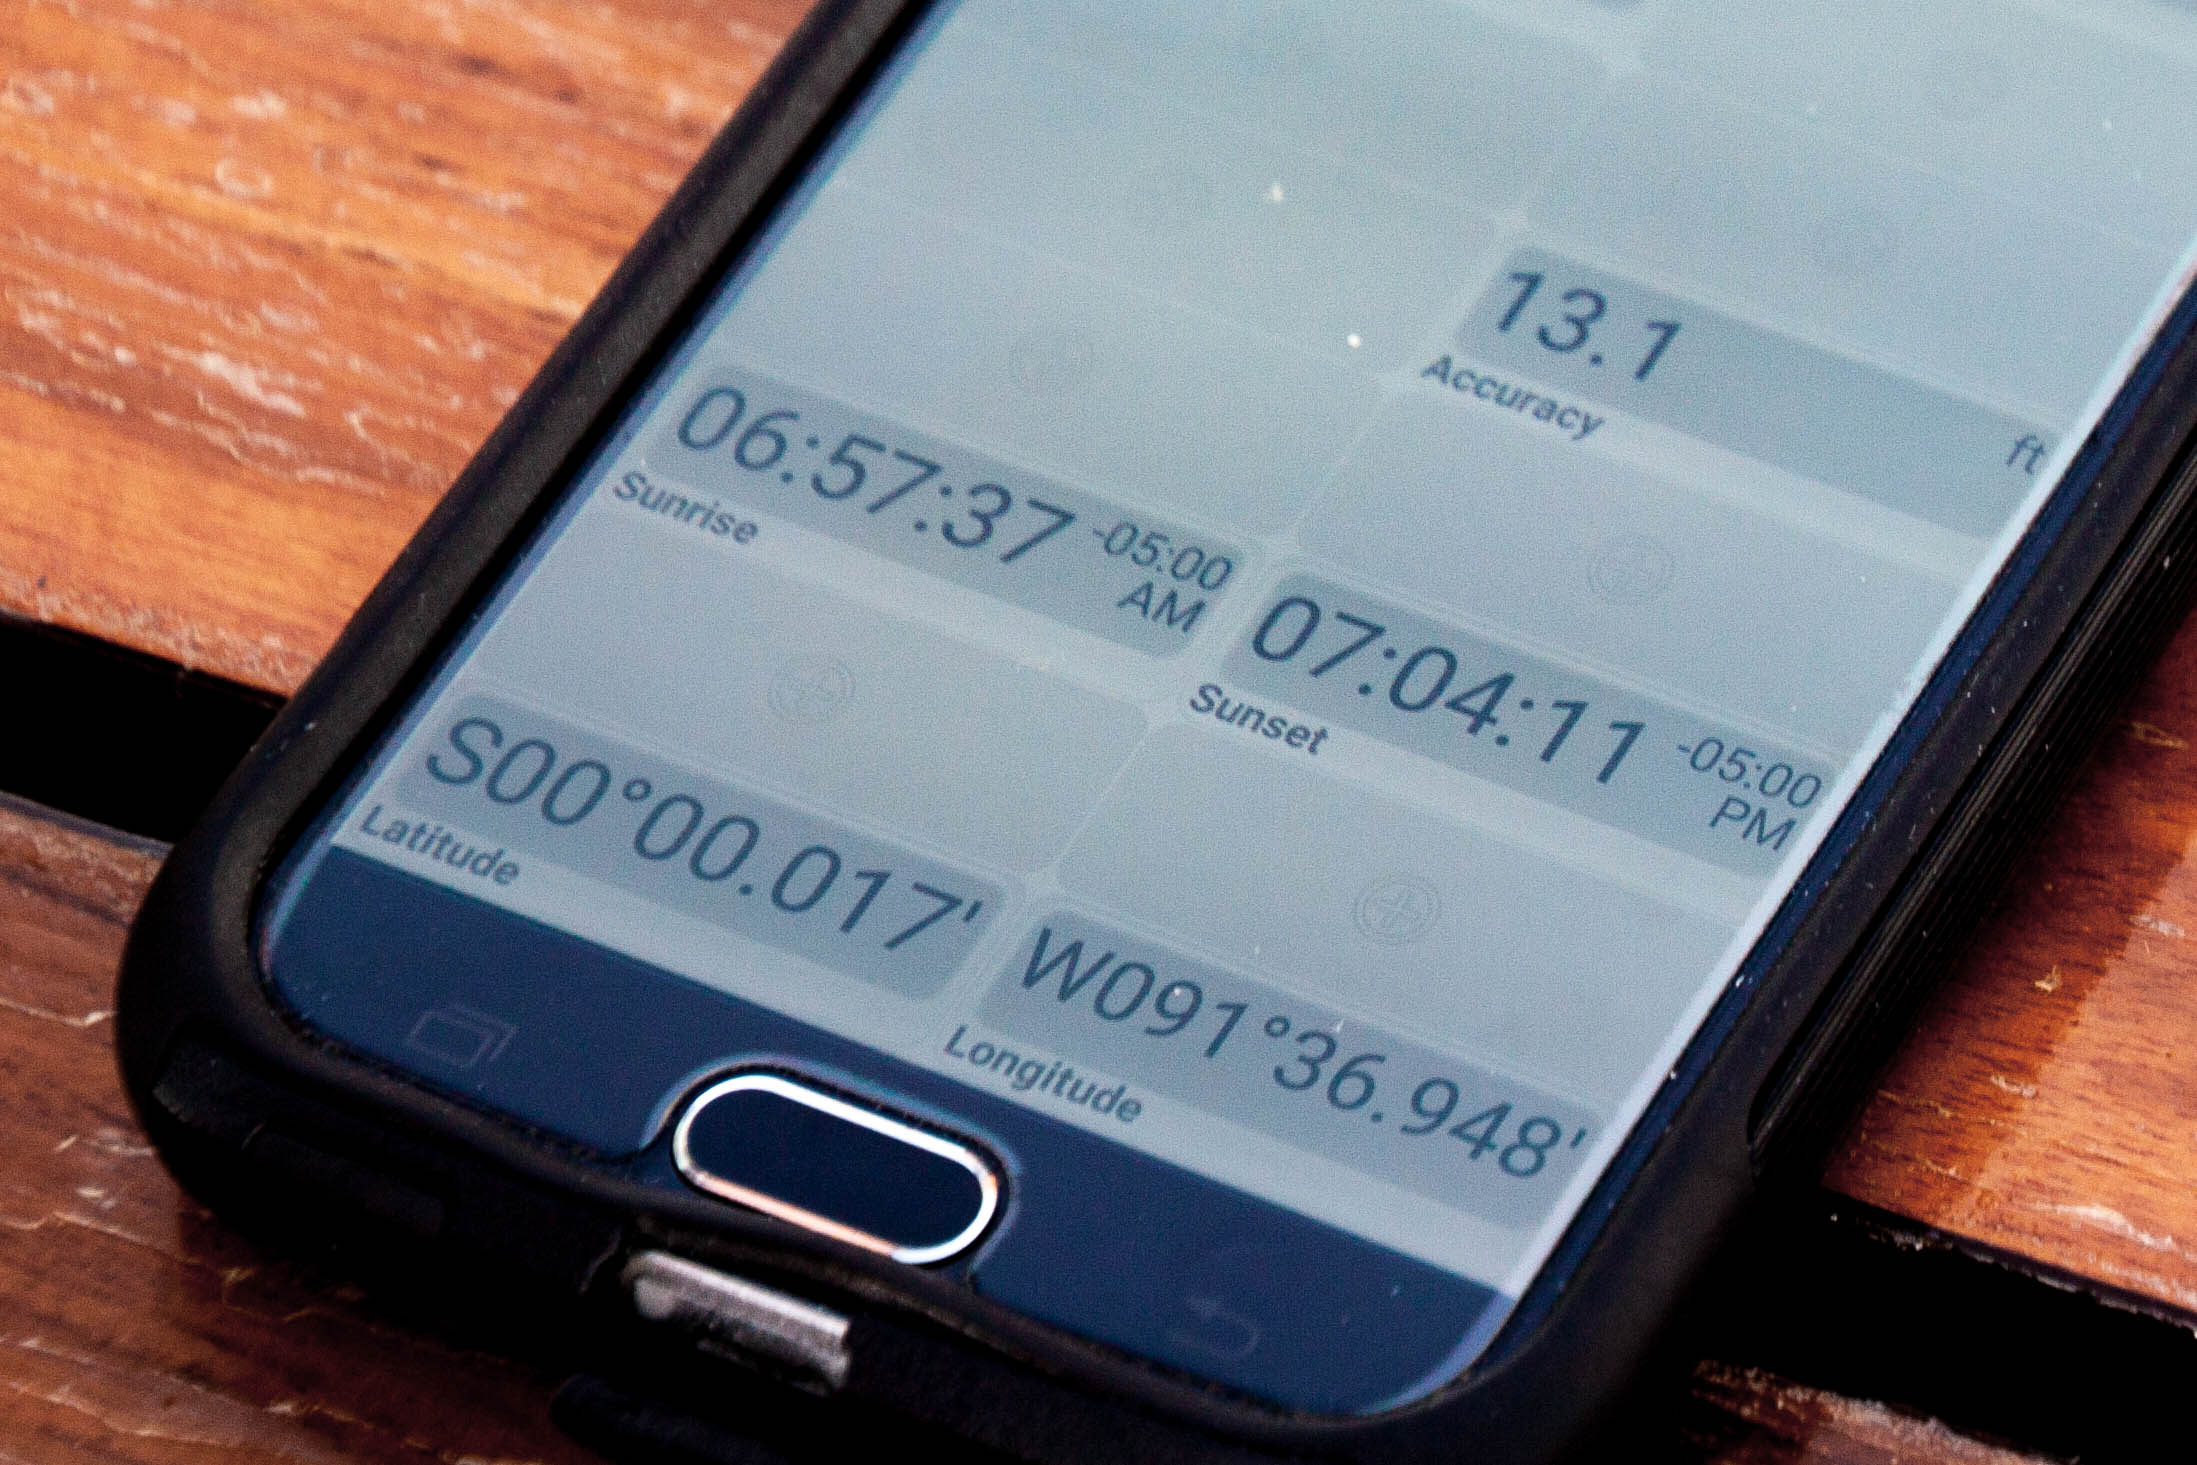 This phone shows our location on the globe using GPS.  Photo by Alison Travis